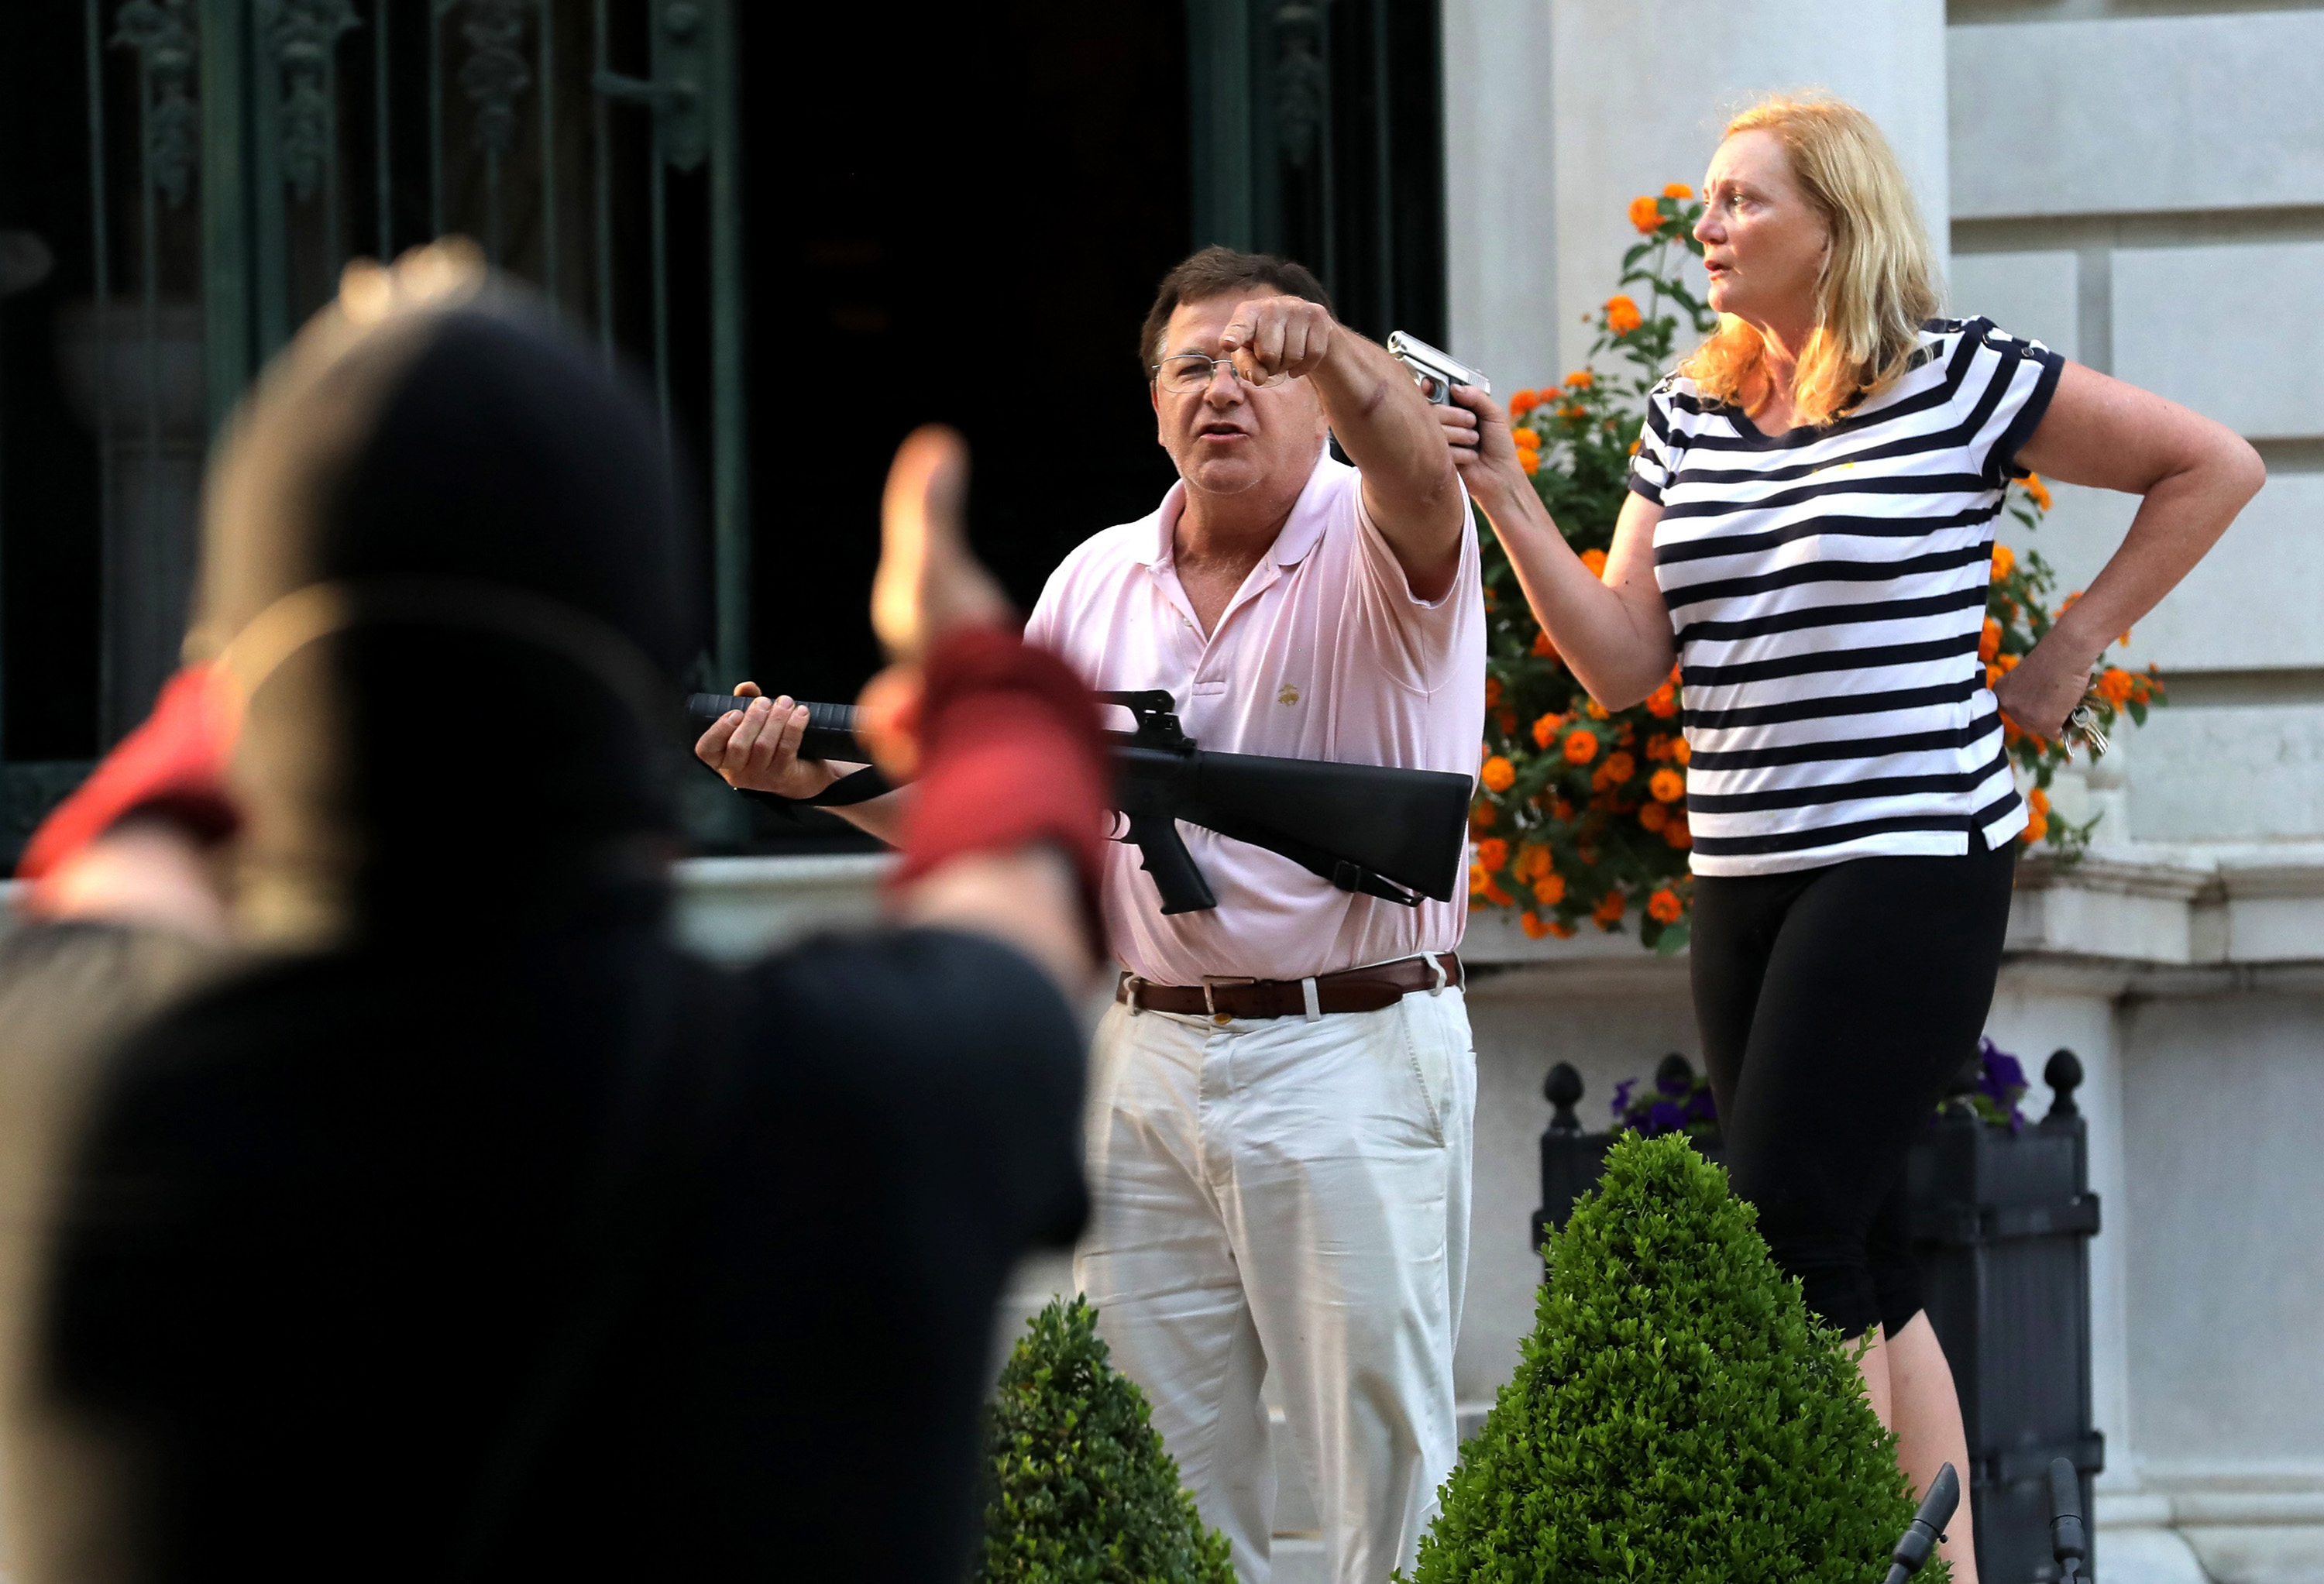 Armed homeowners Mark and Patricia McCloskey confront protesters marching to St. Louis Mayor Lyda Krewson's house on June 28, 2020 in St. Louis.